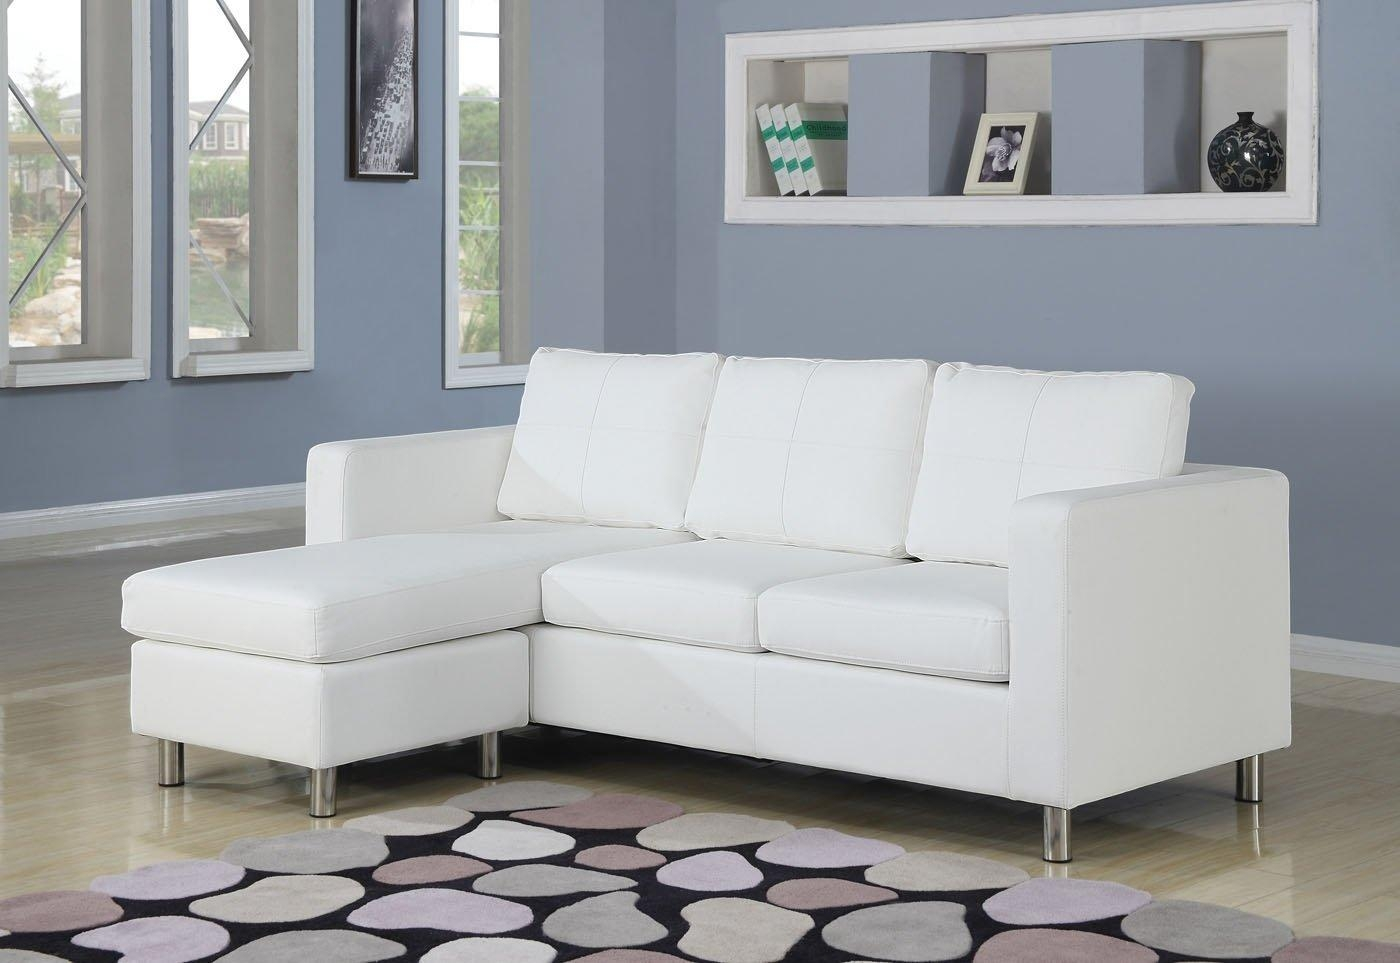 Small Scale Leather Sofa   Tehranmix Decoration Within Small Scale Sofas (Image 7 of 20)